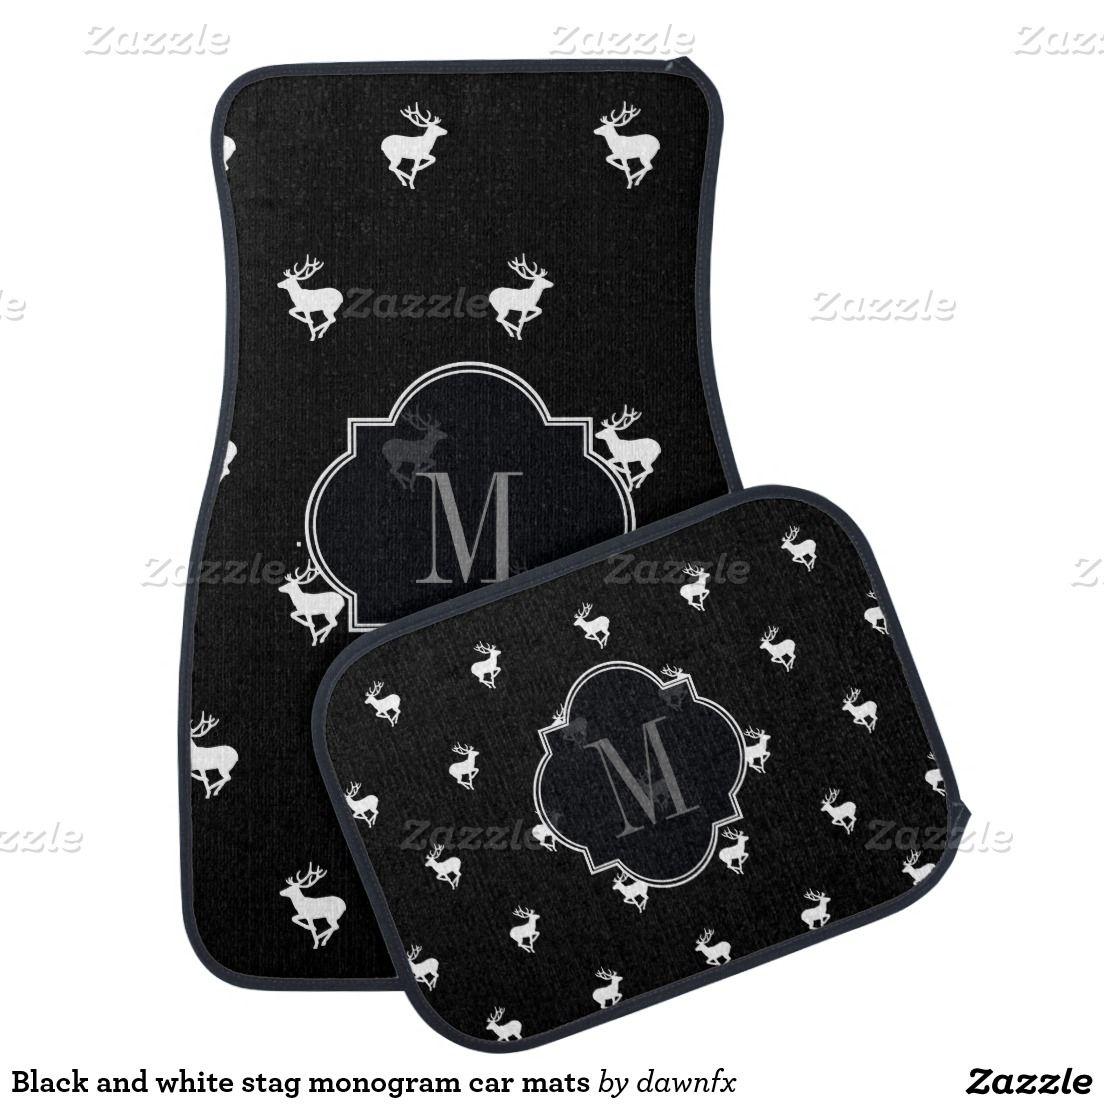 Black and white stag monogram car mats